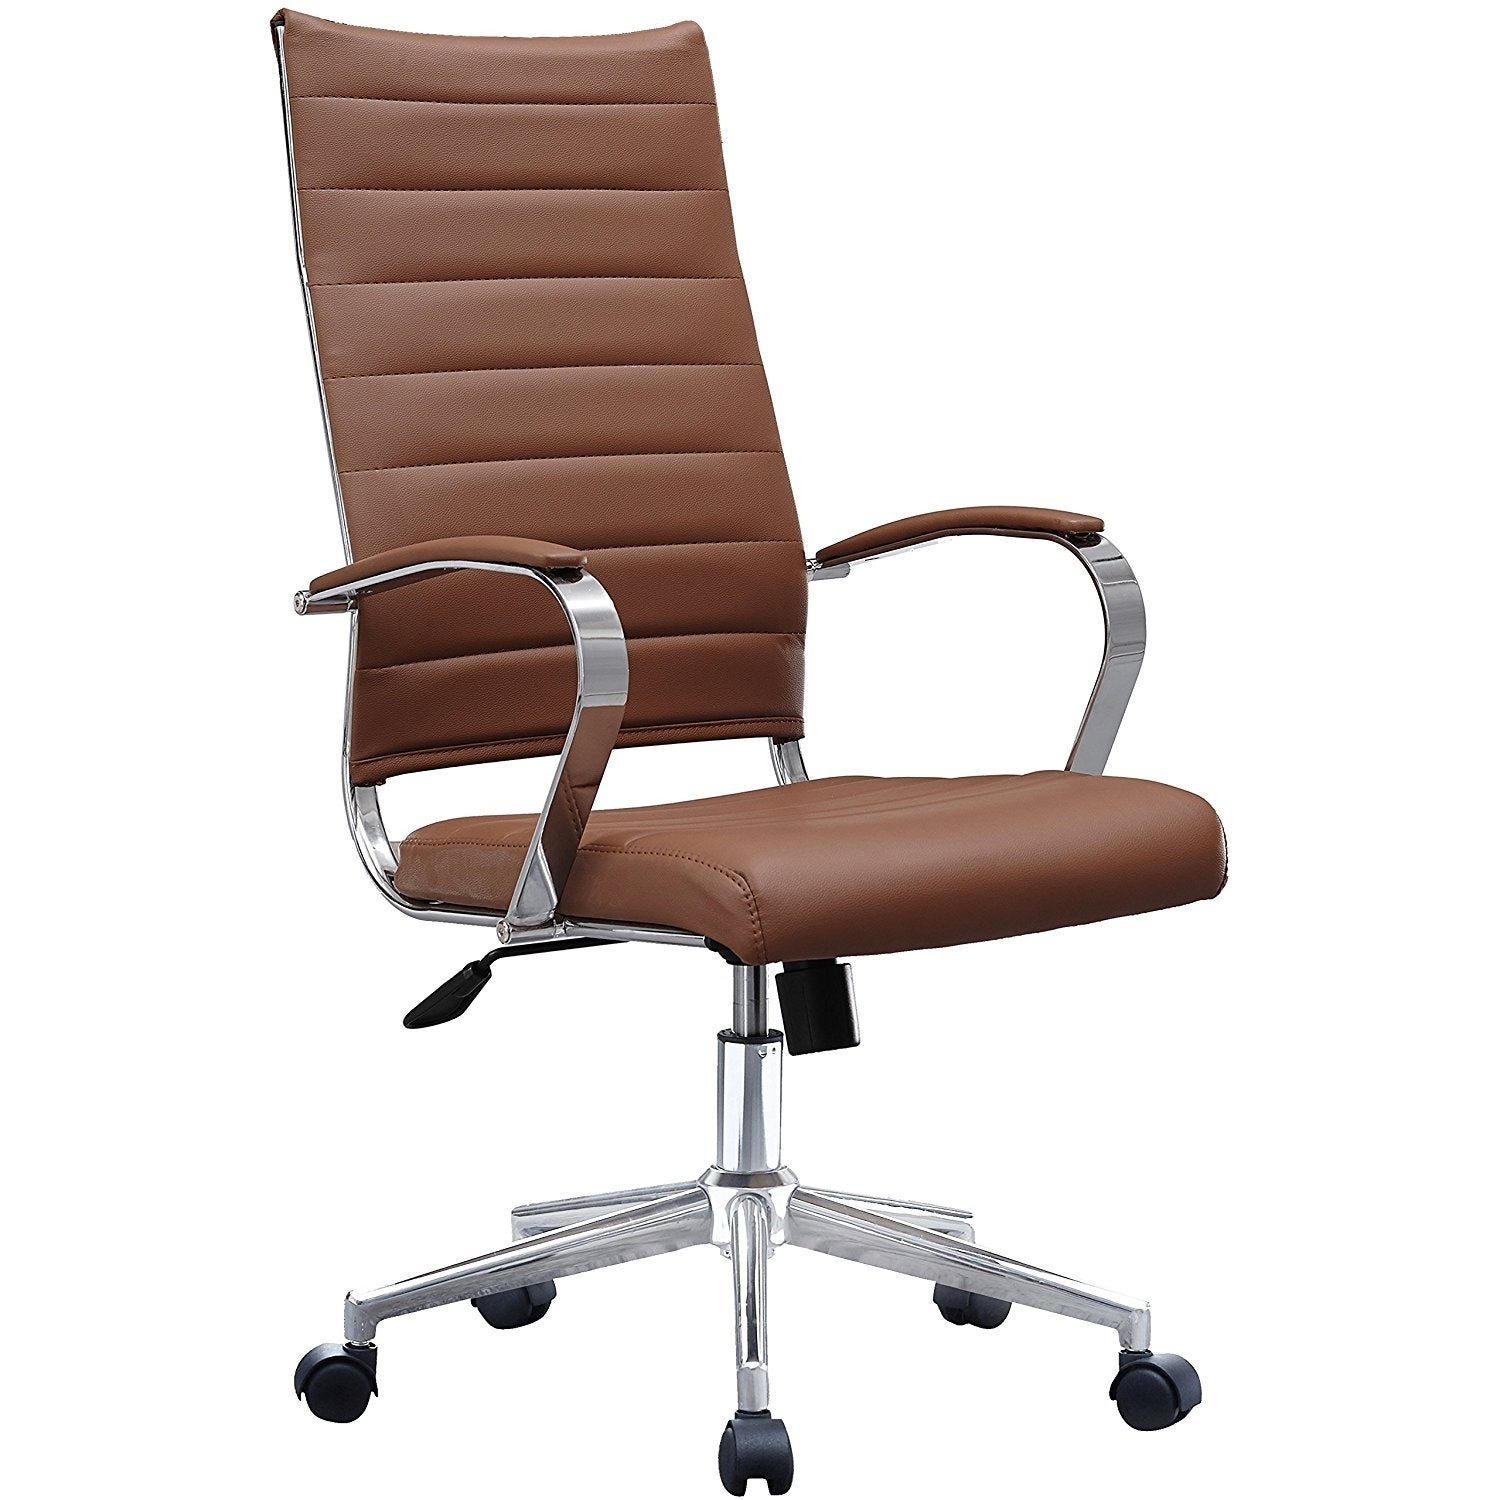 eames ribbed chair tan office. 2xhome Modern Brown High Back Office Chair Ribbed PU Leather Swivel Conference Room Computer Desk Visitor Vintage Retro Boss - Free Shipping Today Eames Tan